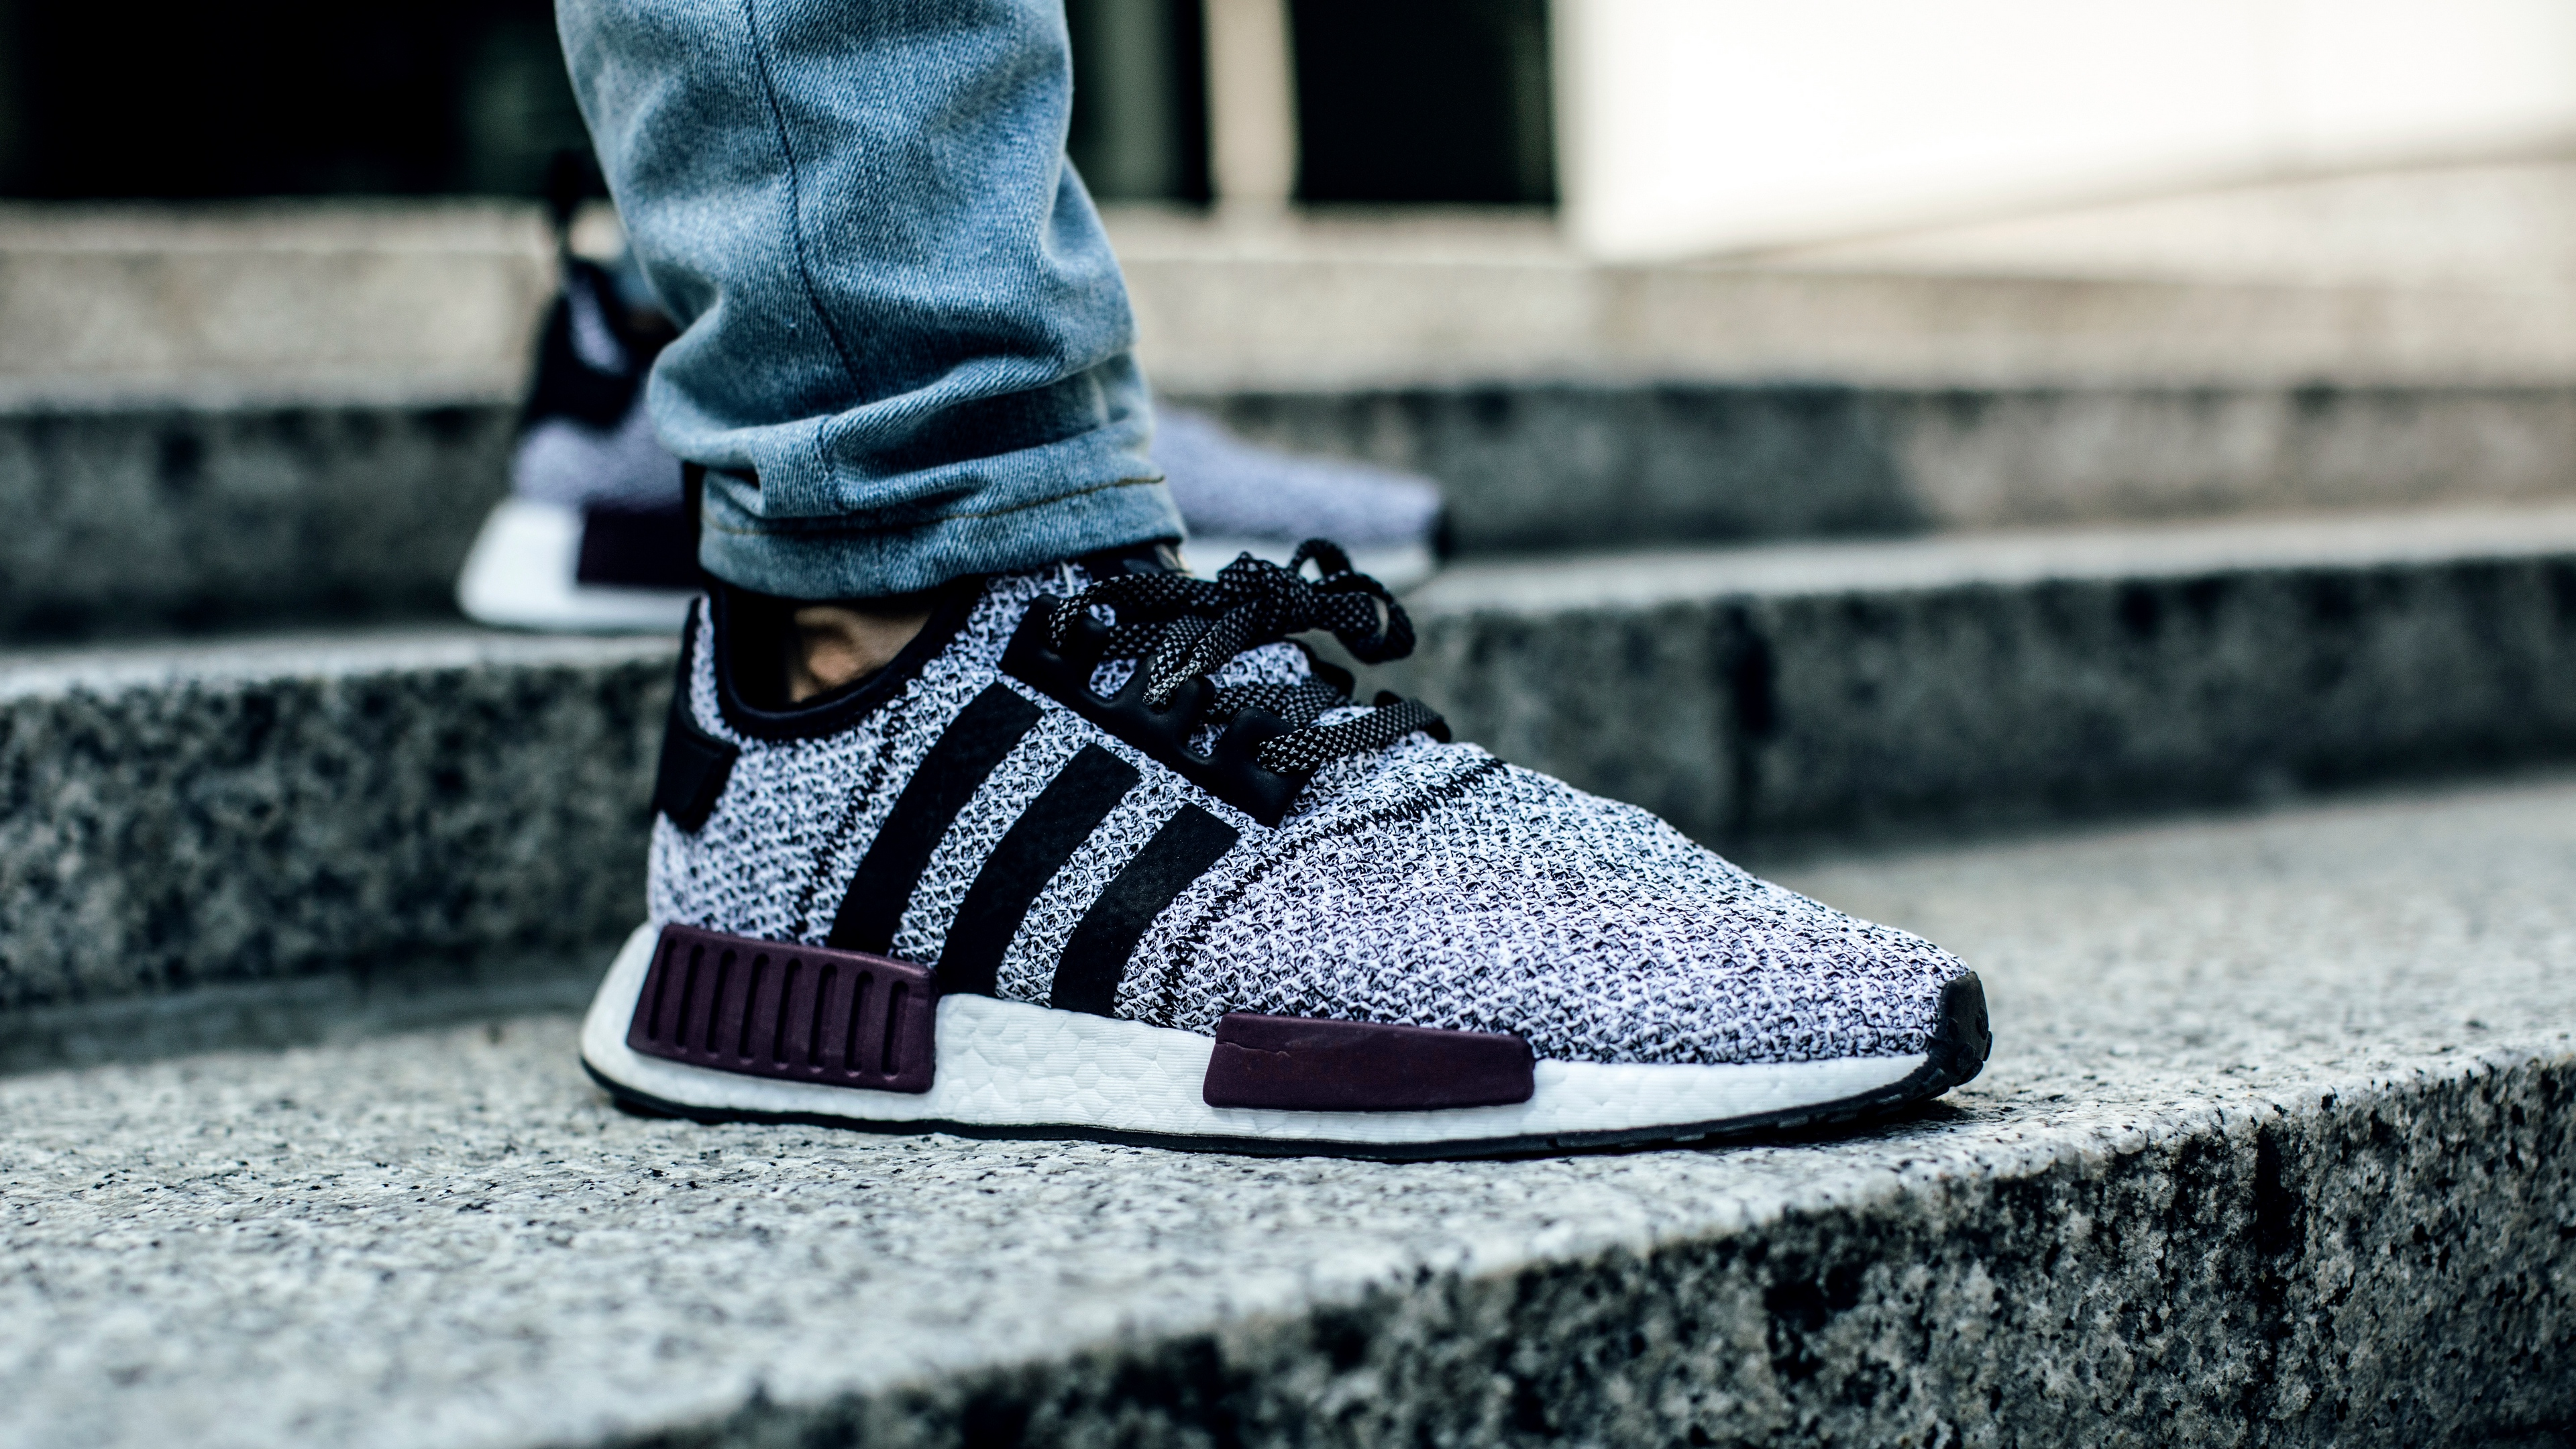 adidas sneakers shoes jeans legs stairs 4k 1540061881 - adidas, sneakers, shoes, jeans, legs, stairs 4k - sneakers, Shoes, Adidas